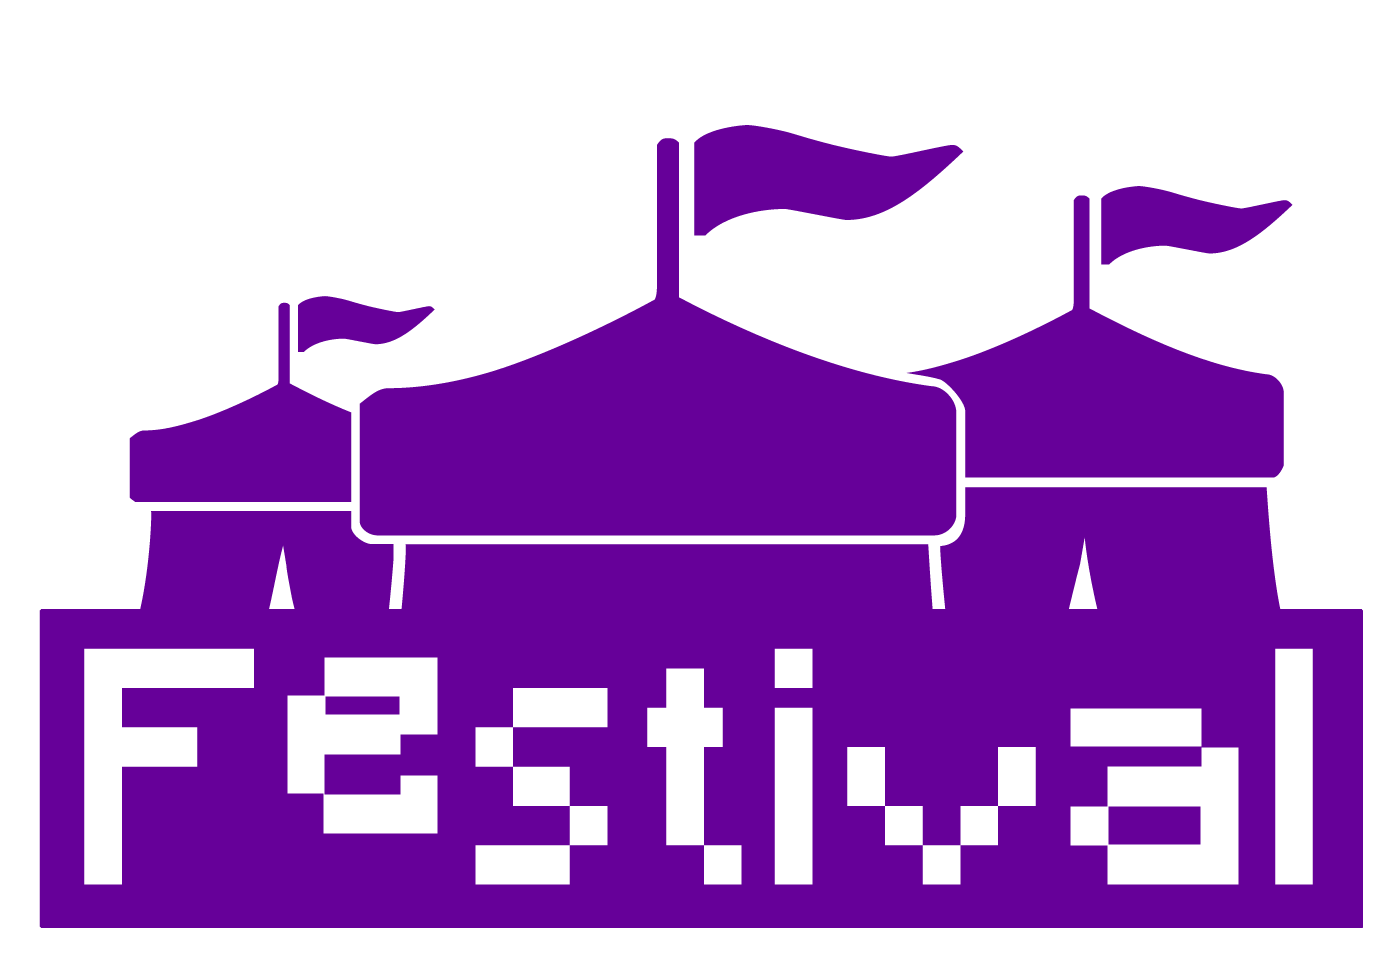 Festival plugin logo large